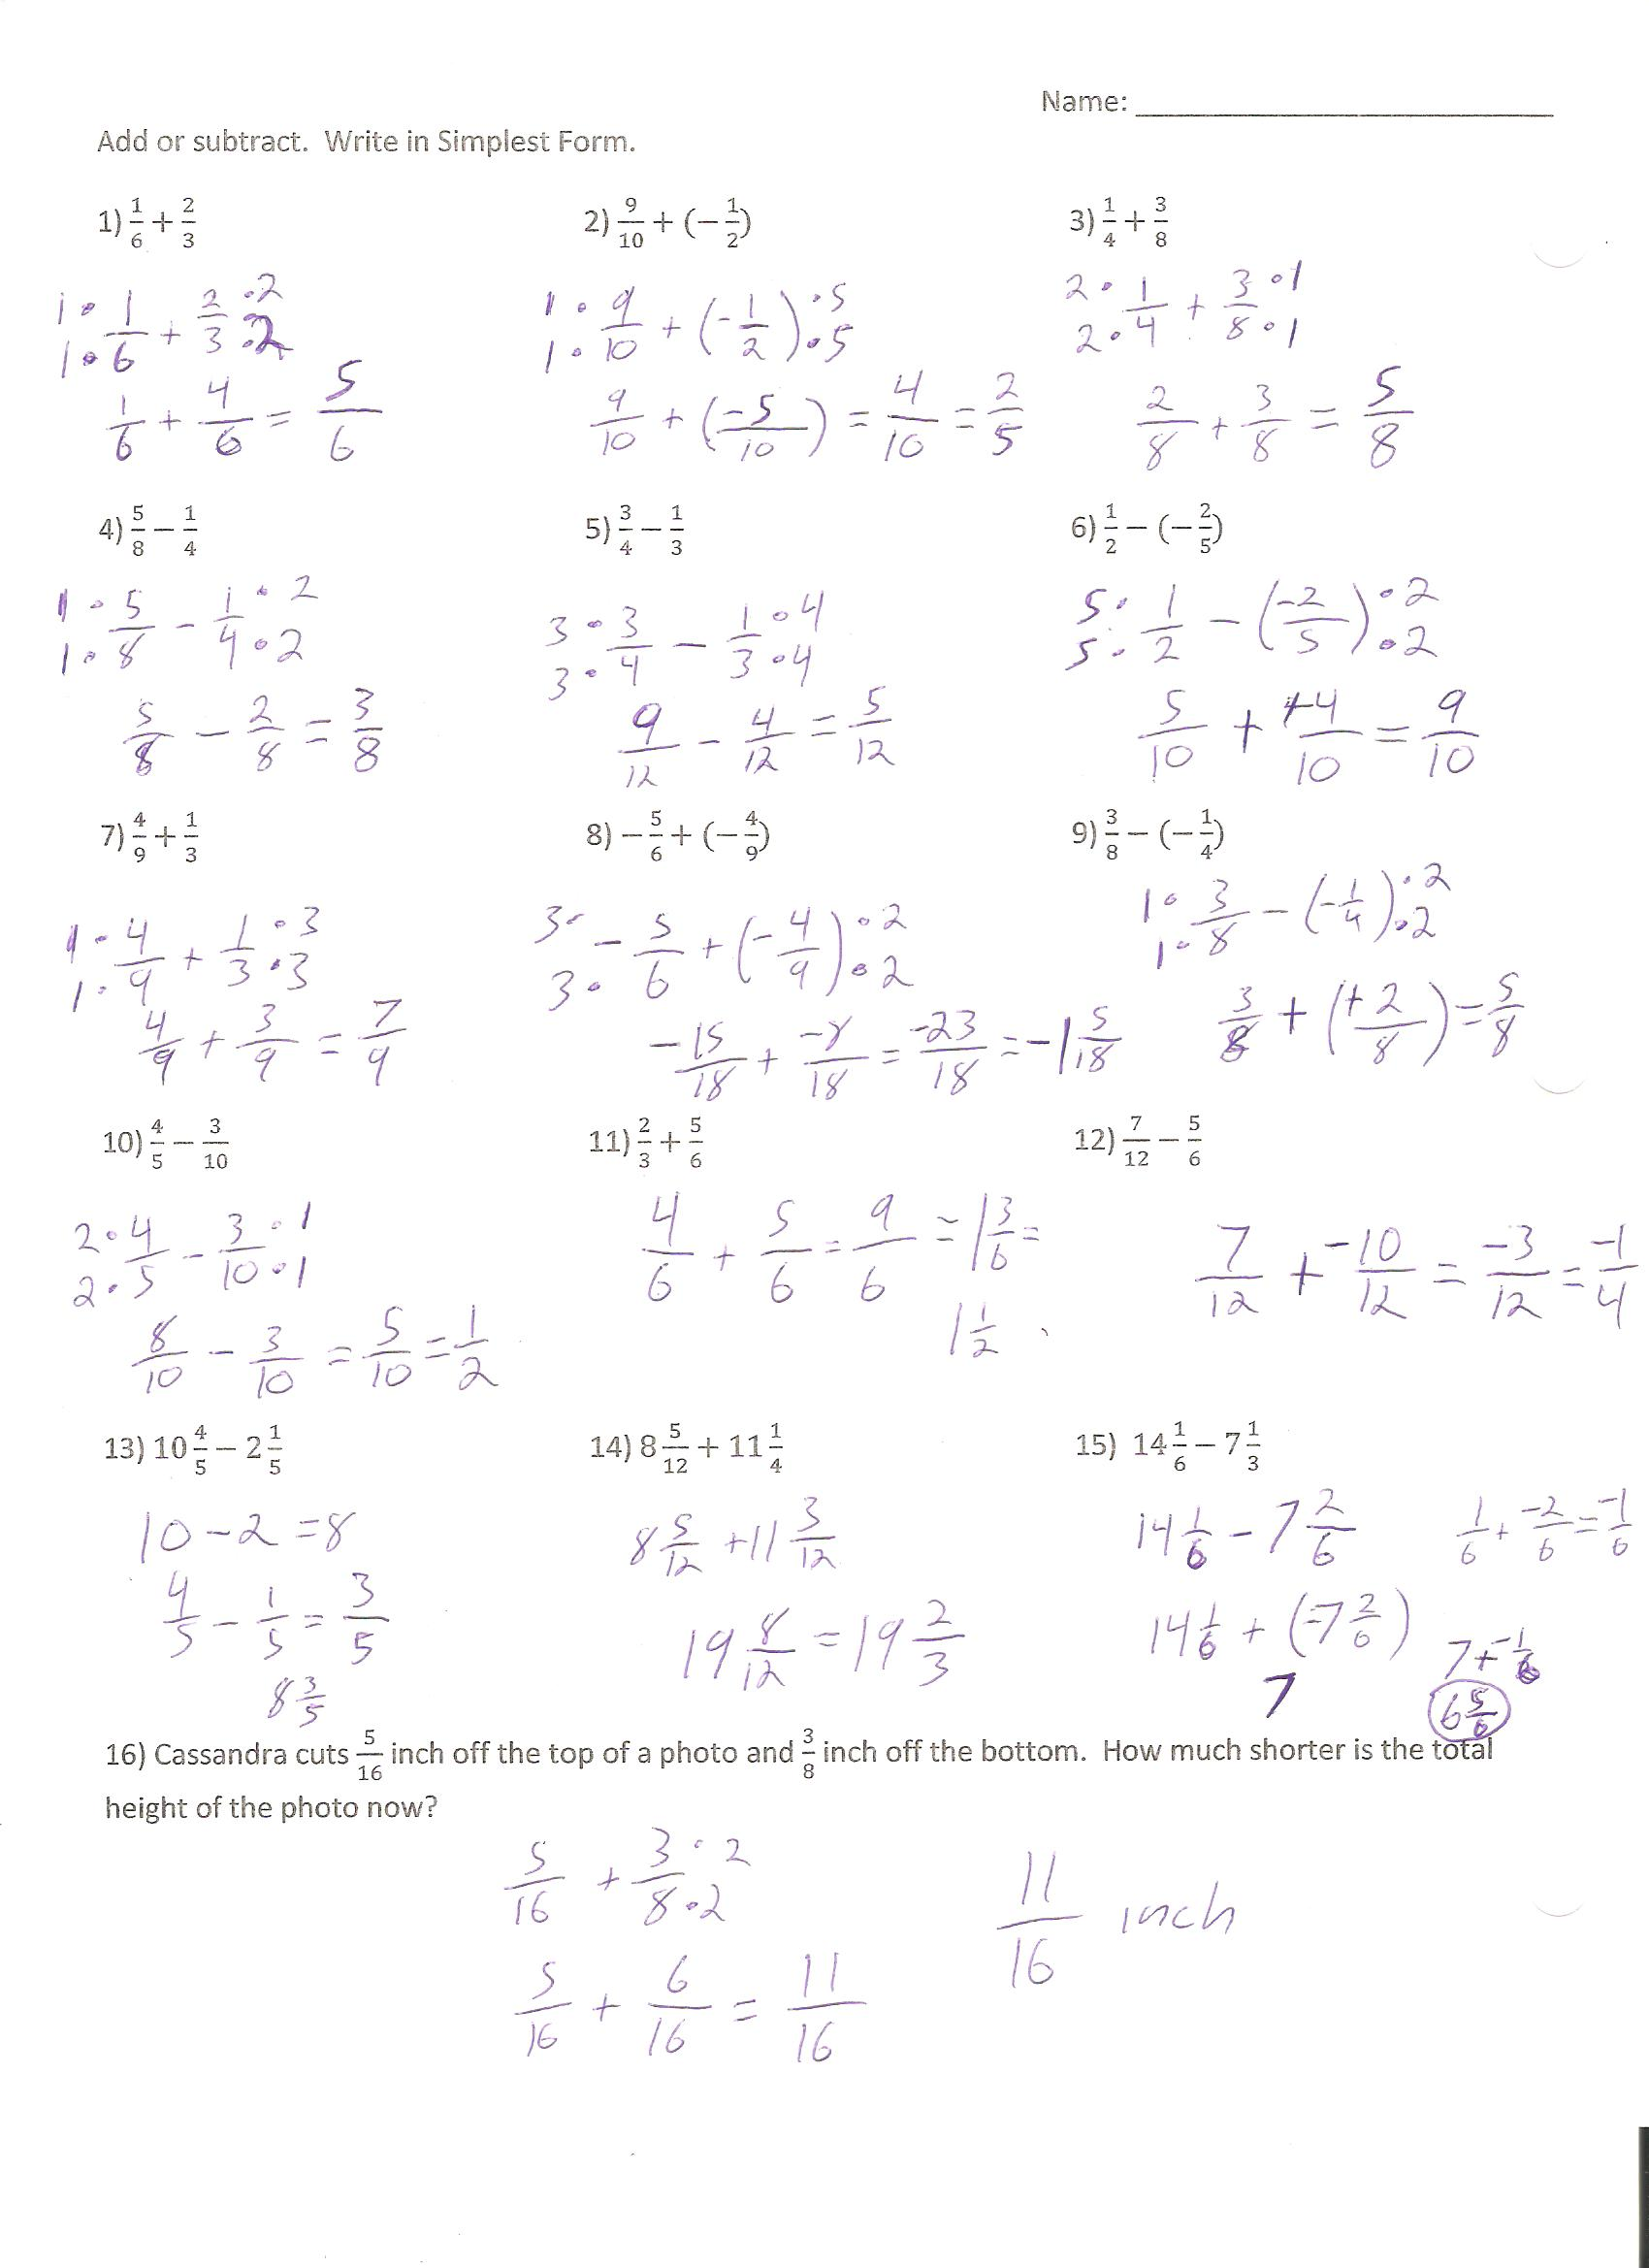 sept._24th_adding_and_subtracting_fractions_page_2.jpg